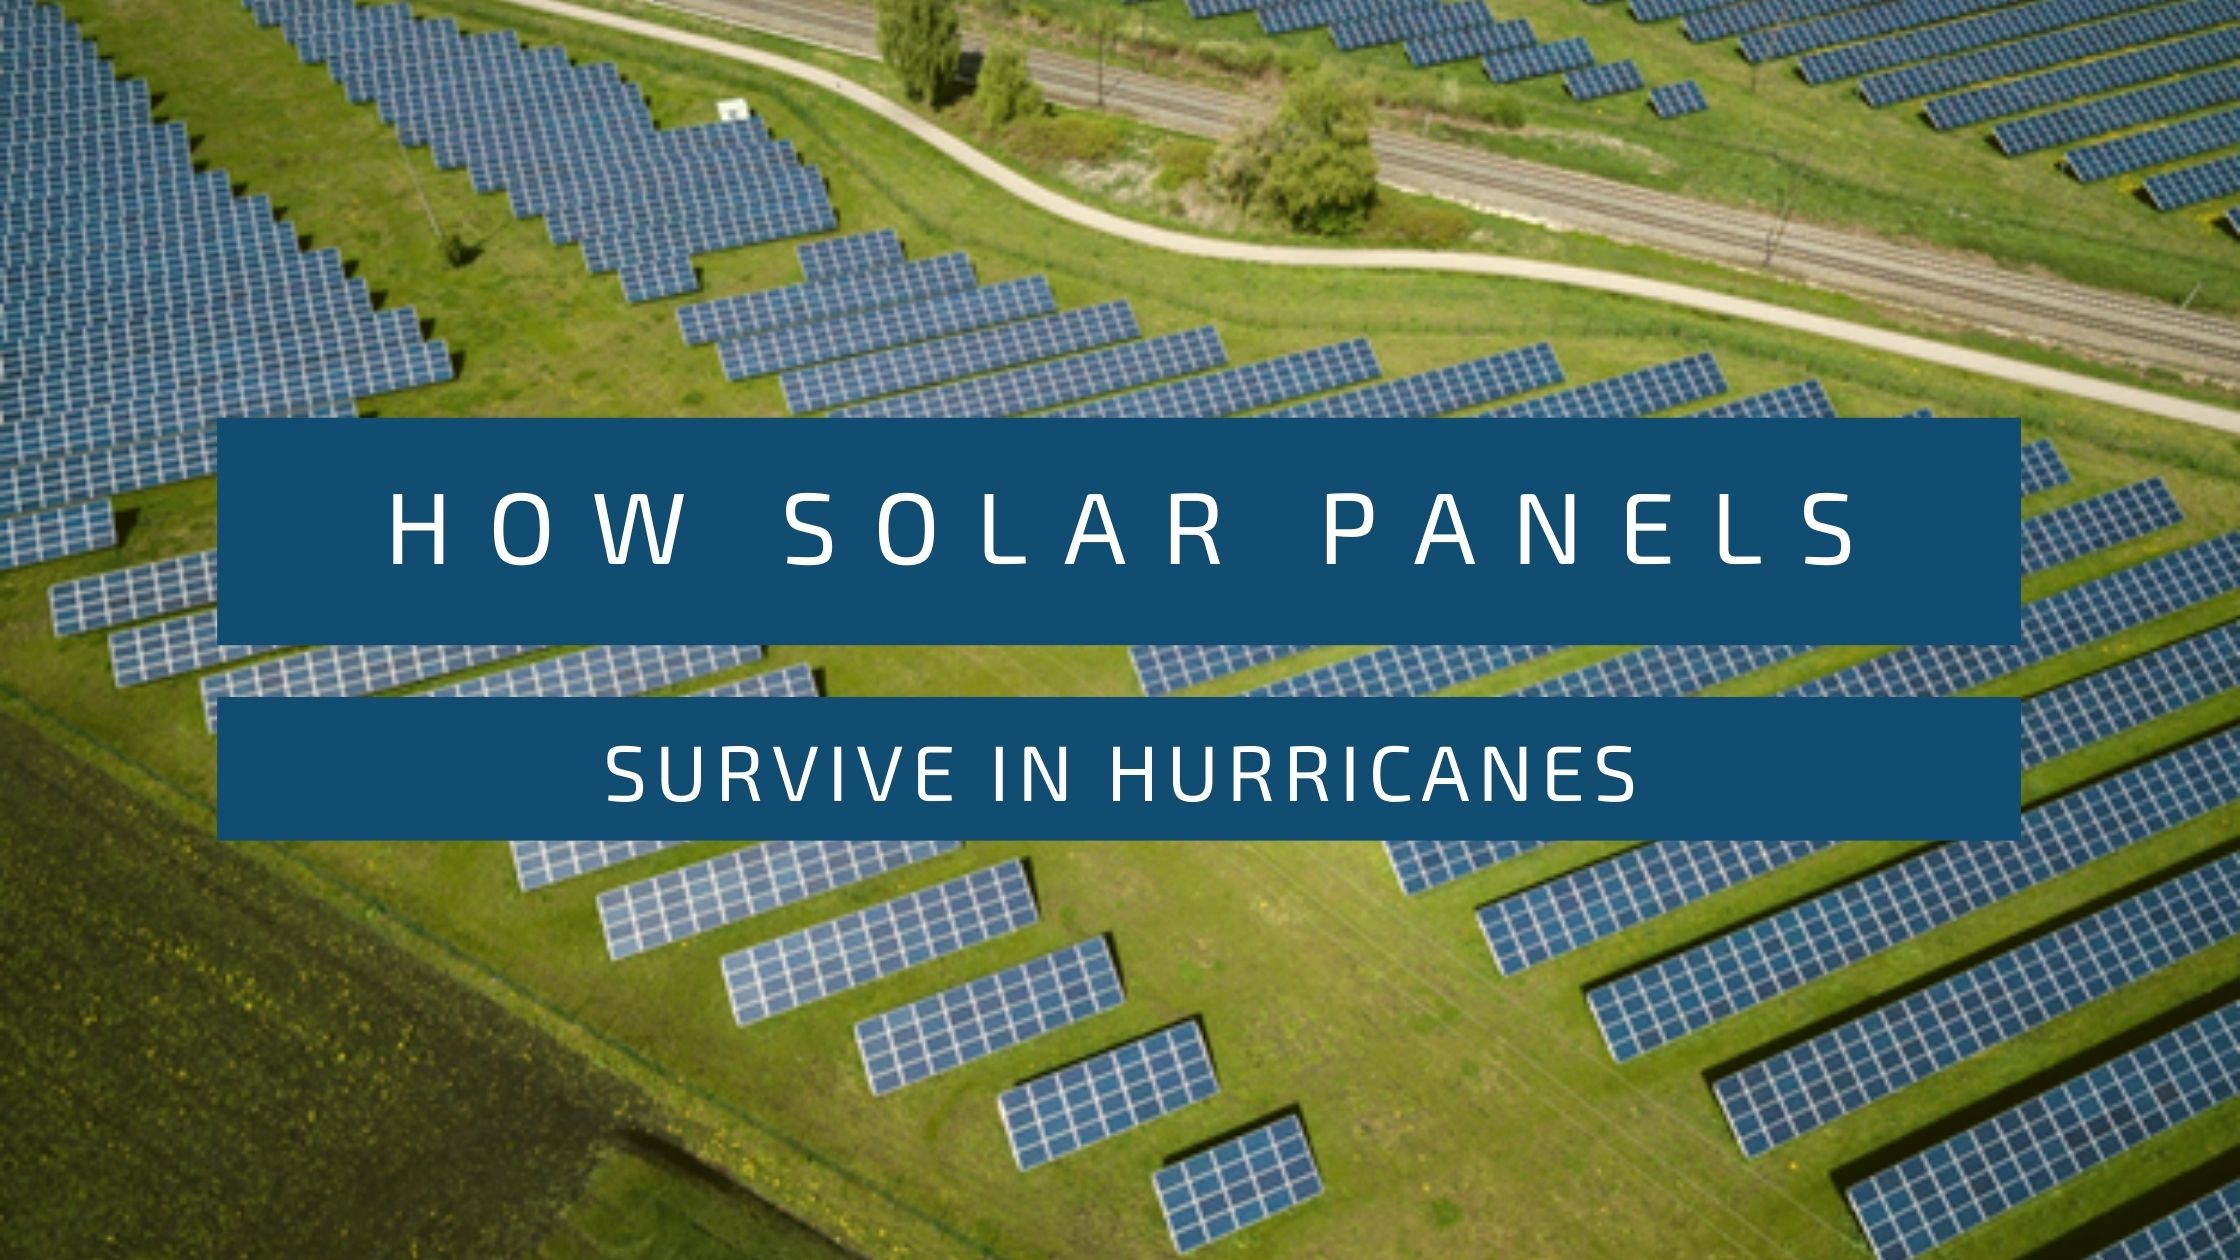 How Solar Panels Survive in Hurricanes